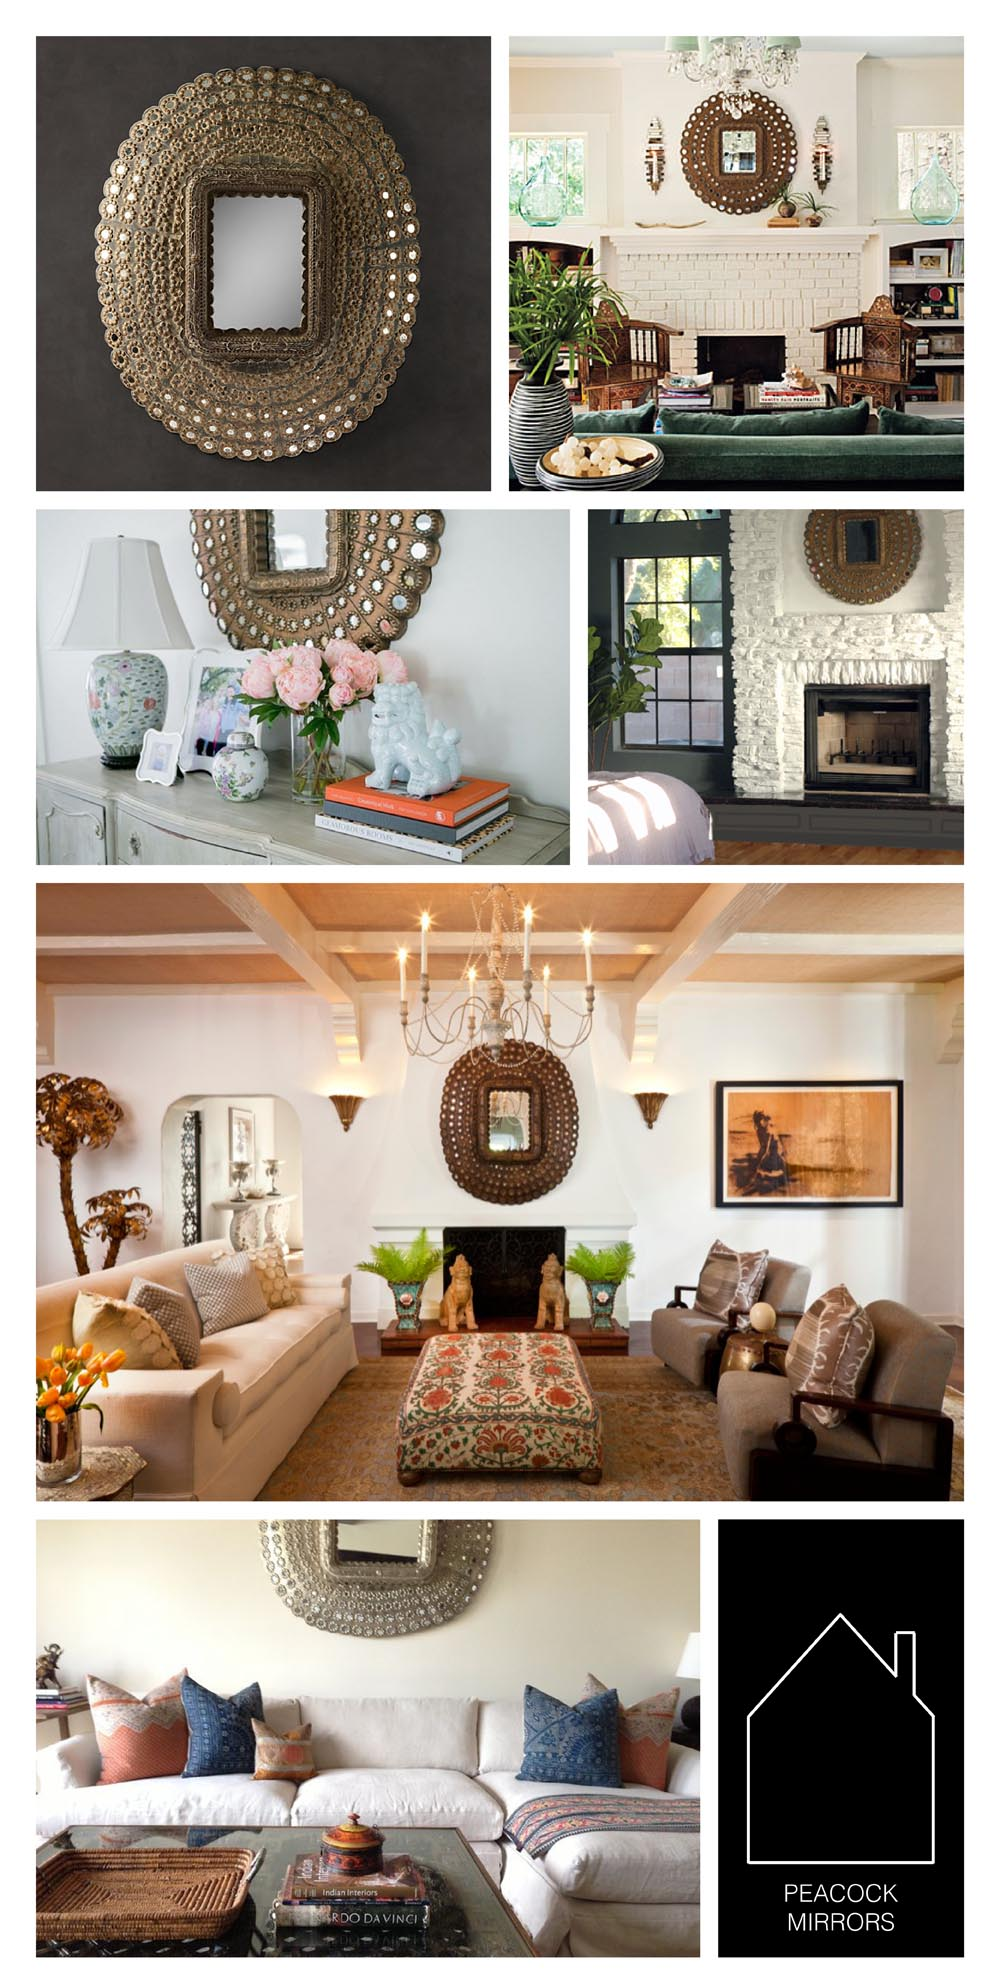 from top left  - peacock mirror by  Restoration Hardware  - via  Southern Living  - via  The Pursuit of Style  - via  The Little Green Notebook  - design by  Hillary Thomas  - design by  Amber Interiors